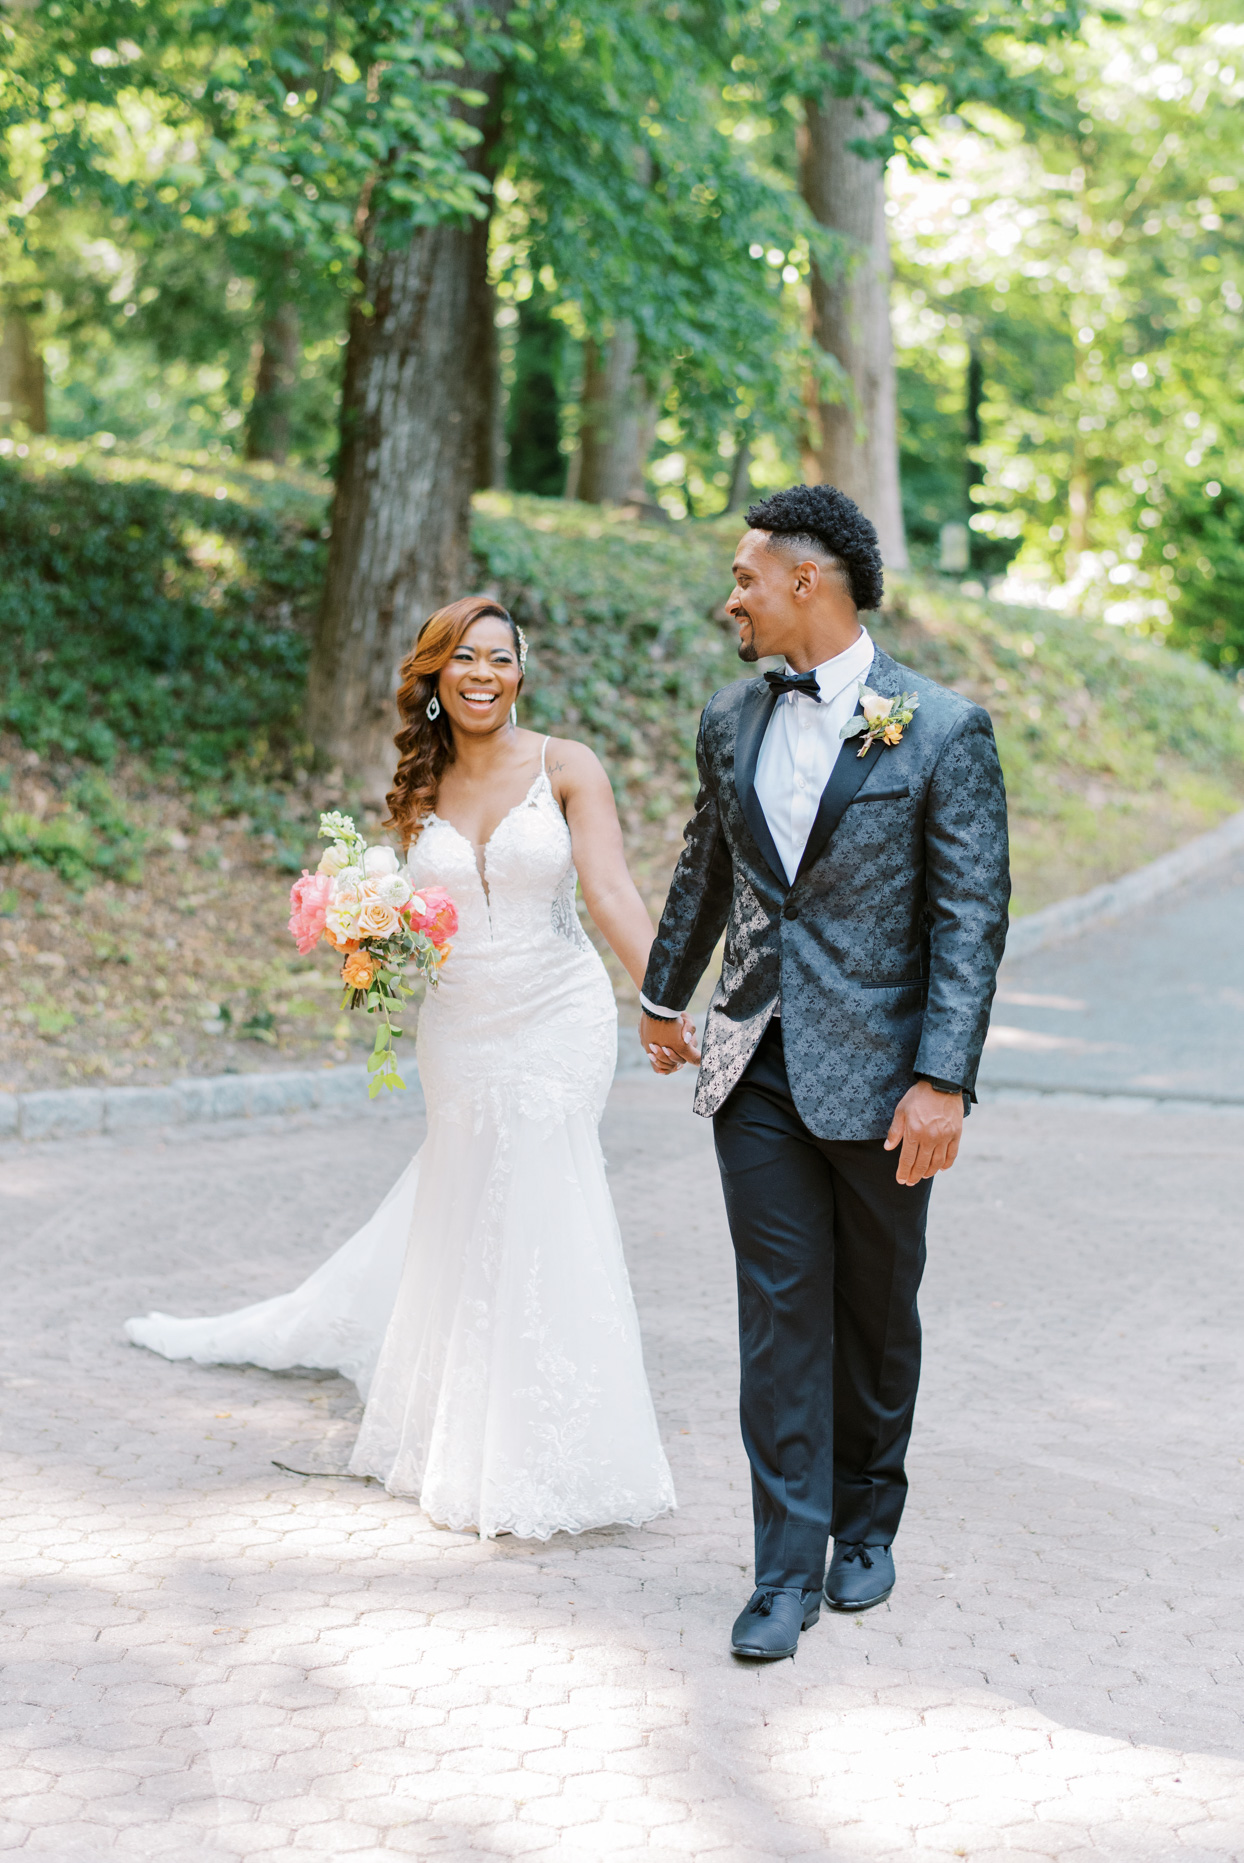 bride smiling at groom holding hands on stone pathway